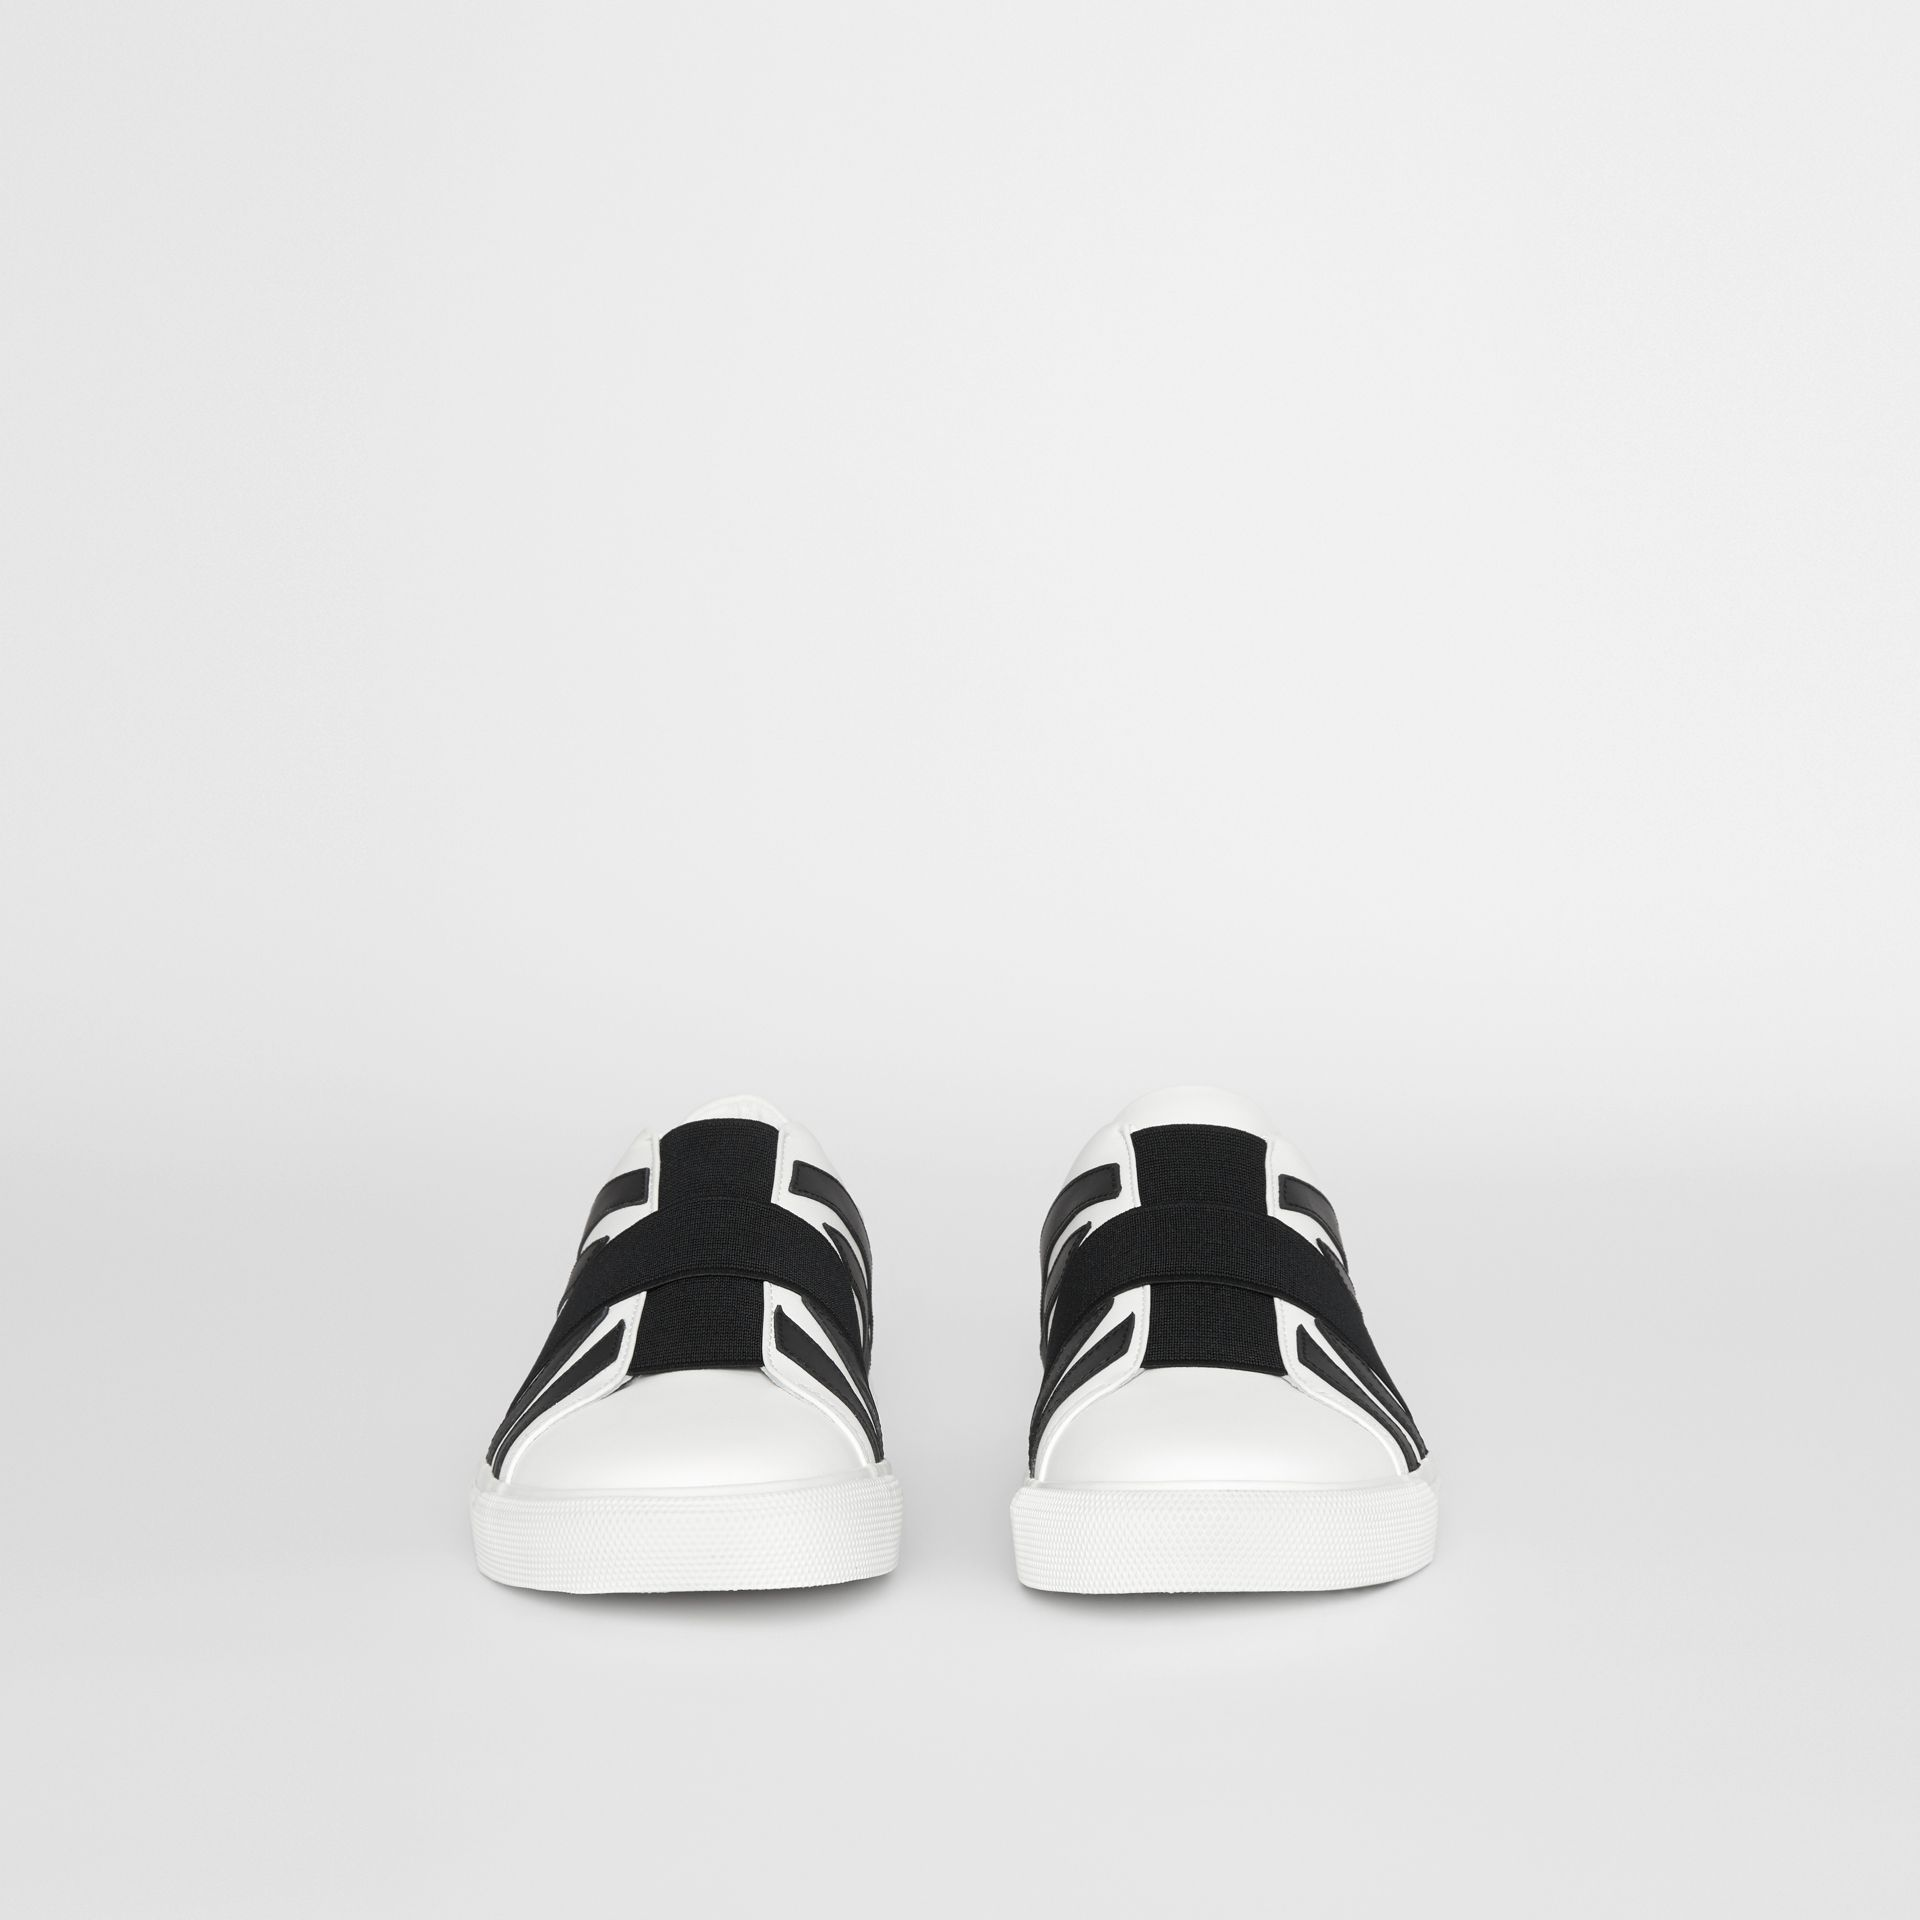 Union Jack Motif Slip-on Sneakers in White - Men | Burberry - gallery image 3